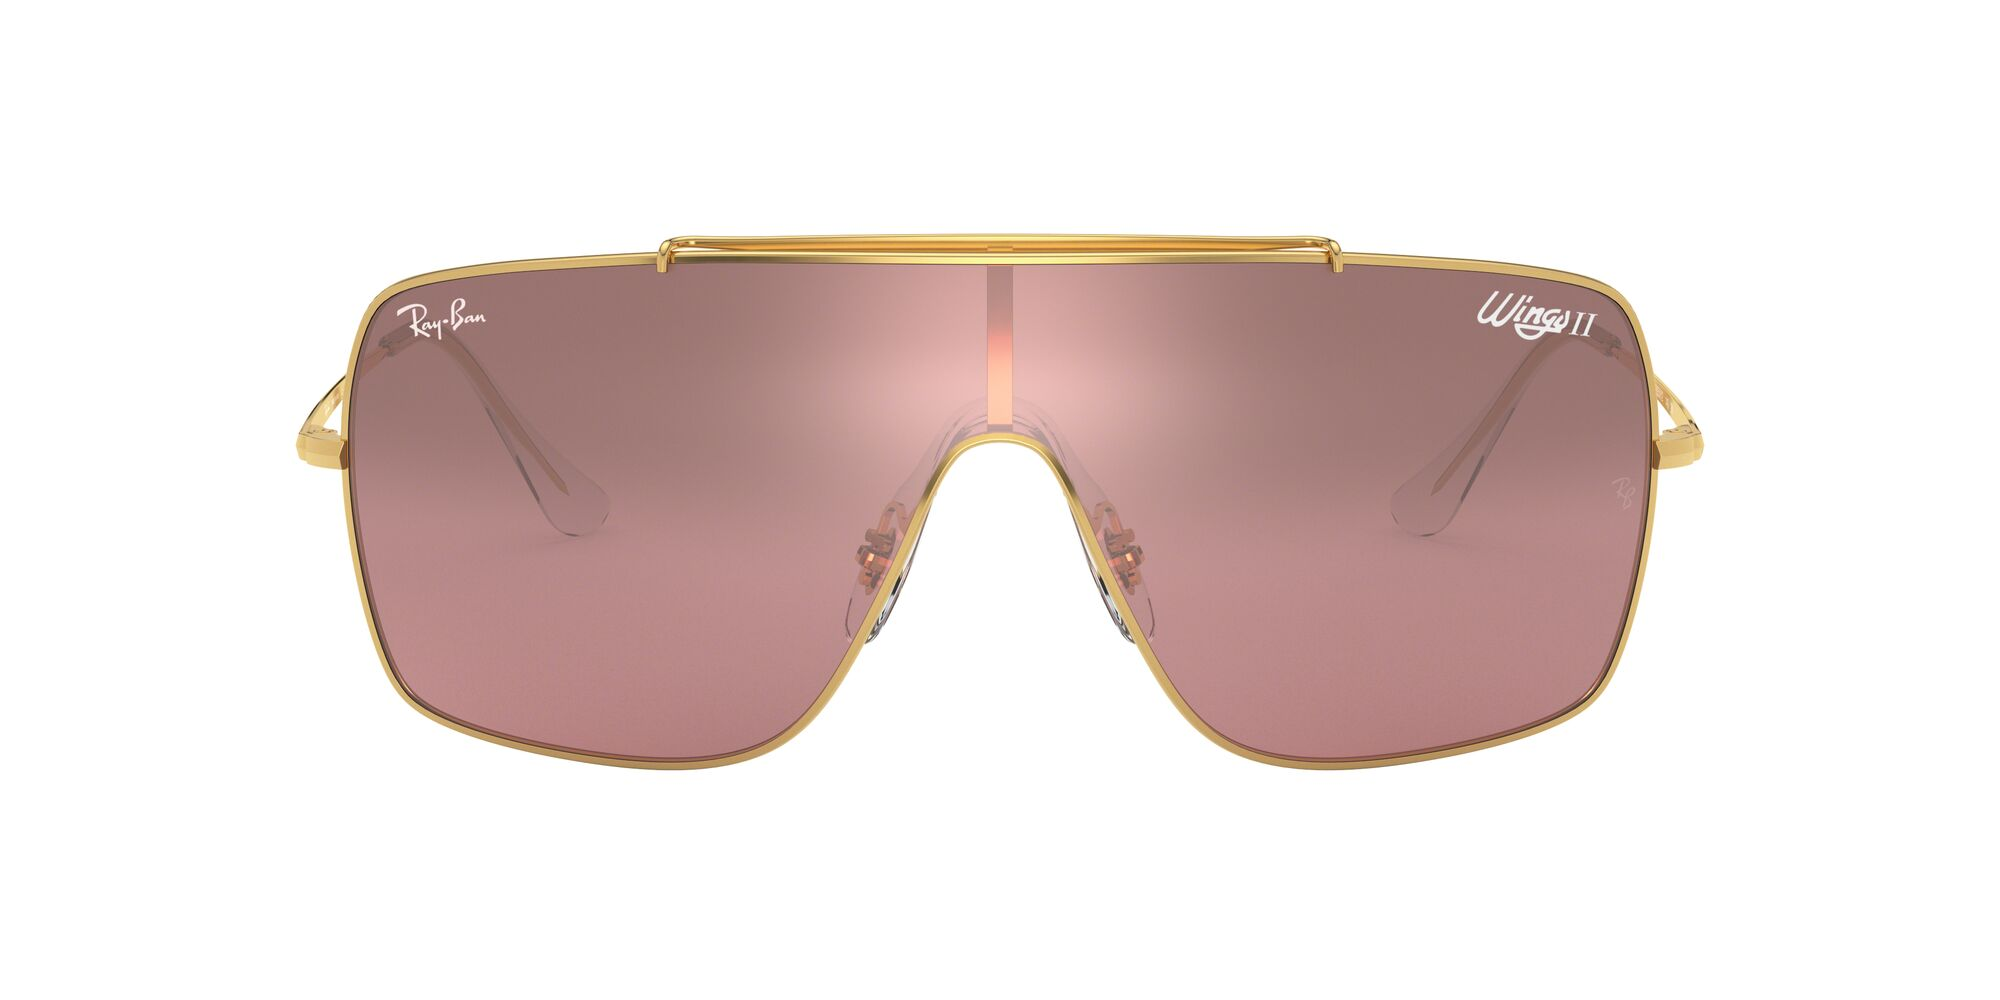 Front Ray-Ban Ray-Ban RB3697 9050Y2 35/68 Goud/Roze